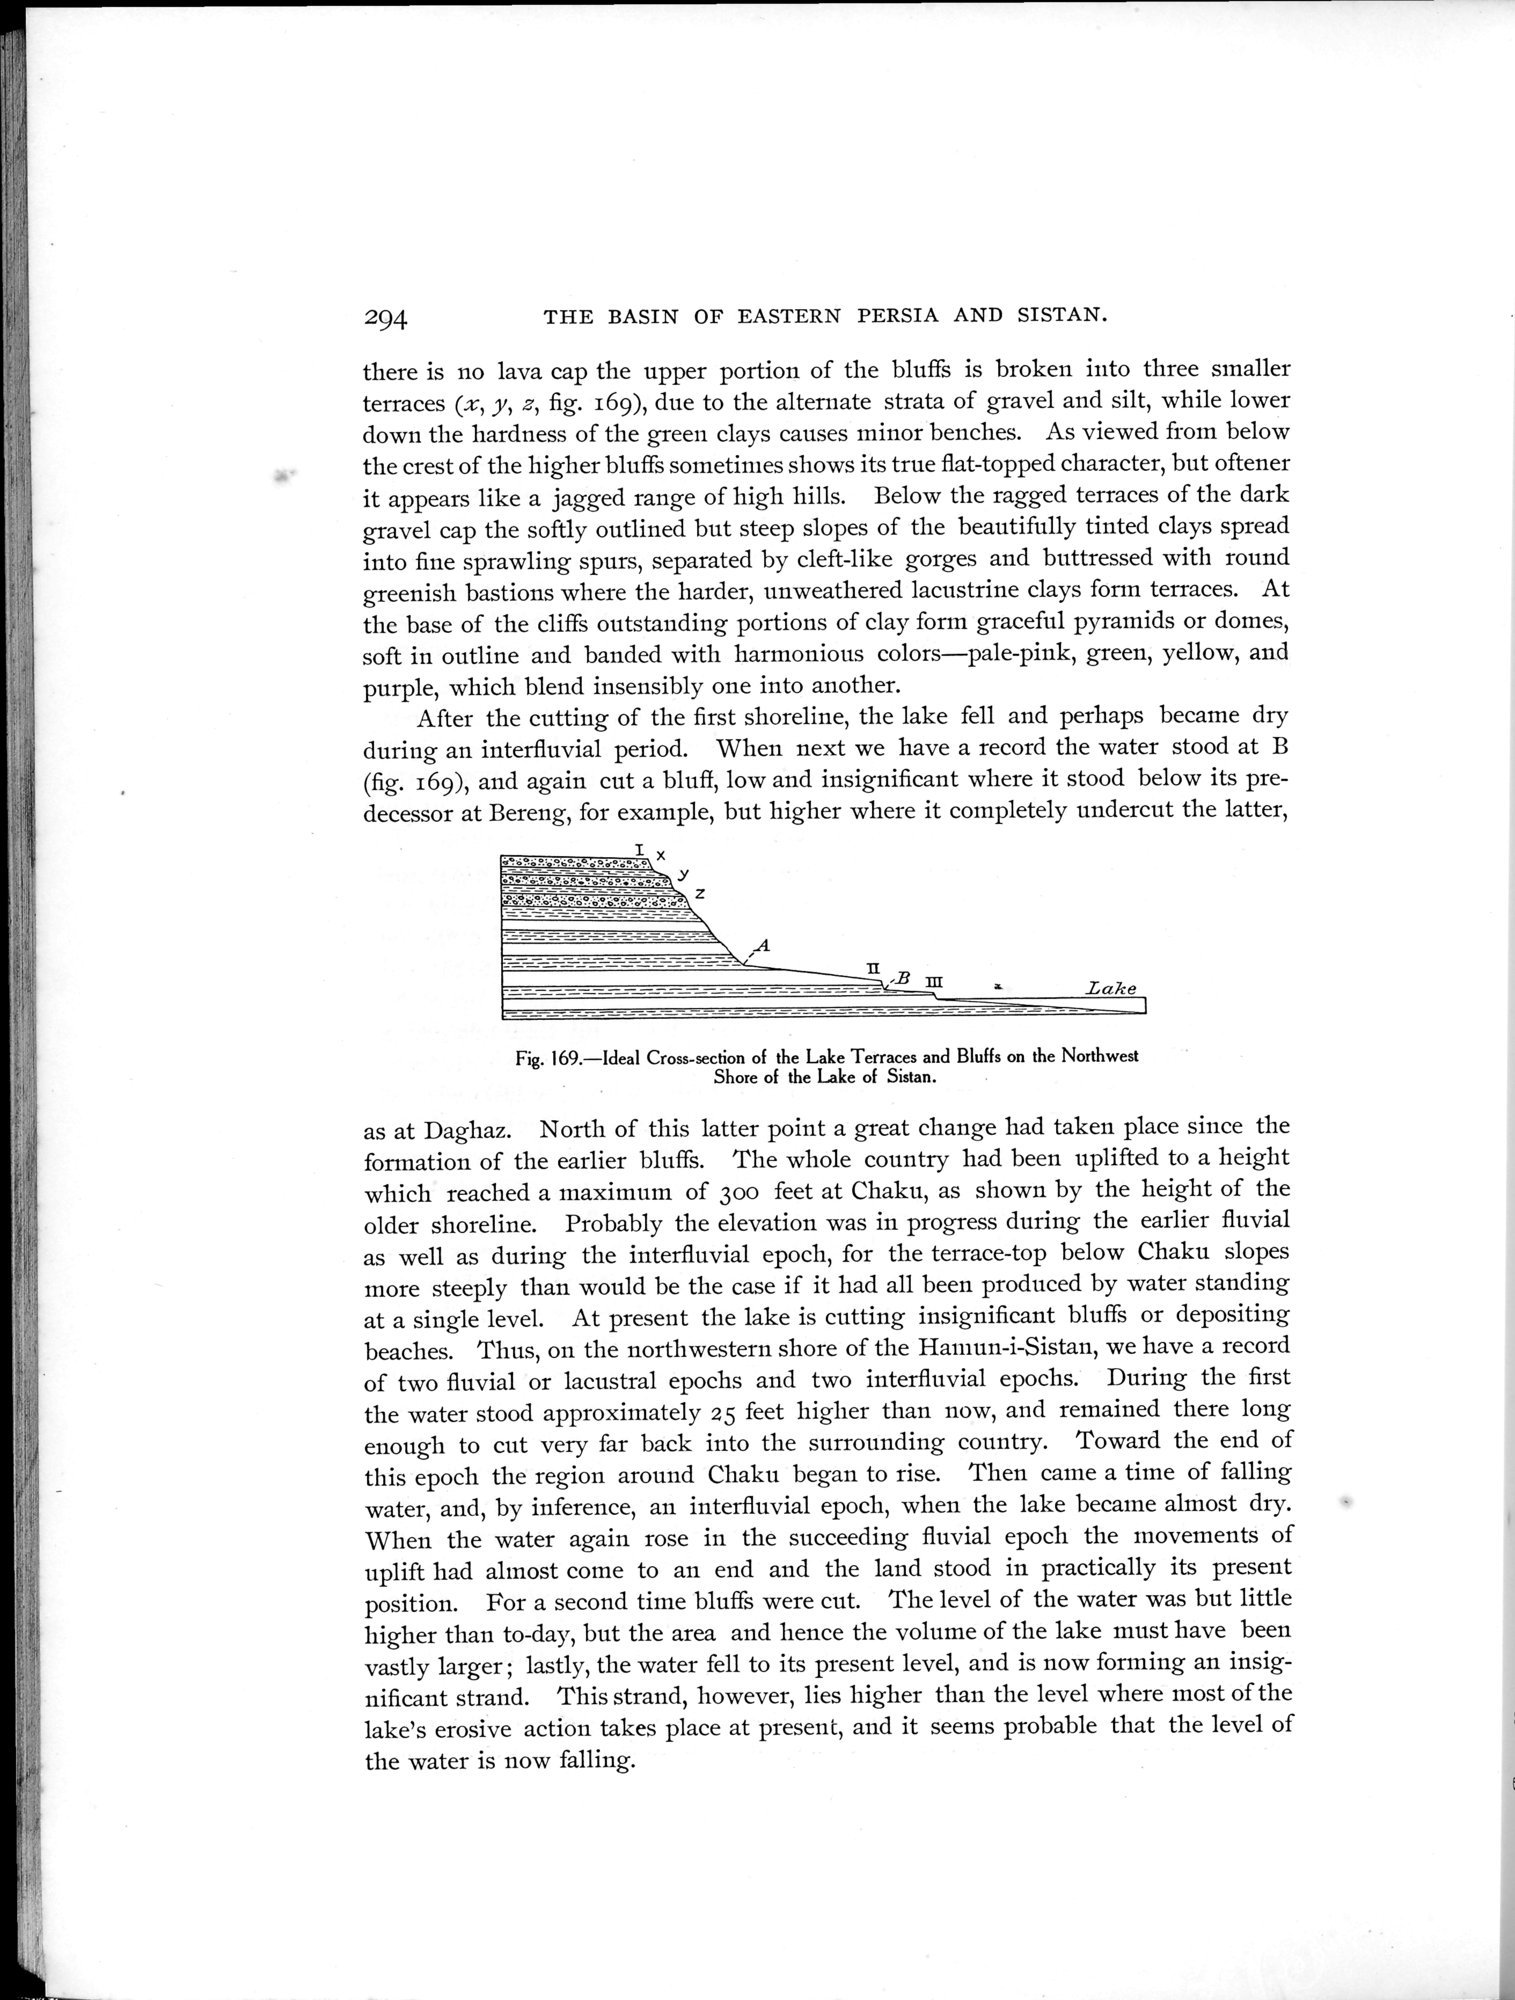 Explorations in Turkestan 1903 : vol.1 / Page 330 (Grayscale High Resolution Image)